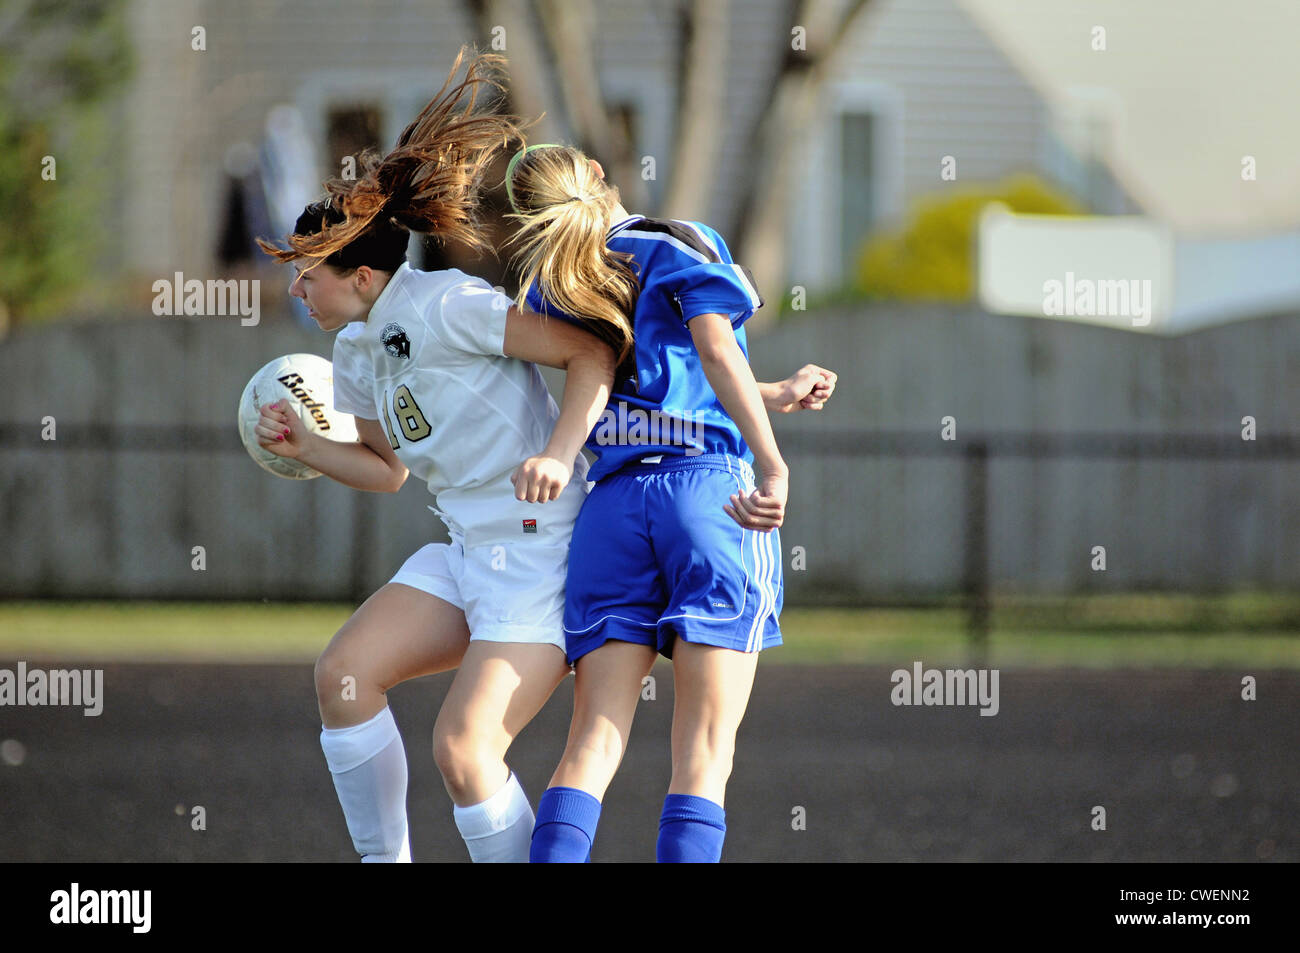 Soccer players battle for possession of the ball along the goal line during a high school match. - Stock Image